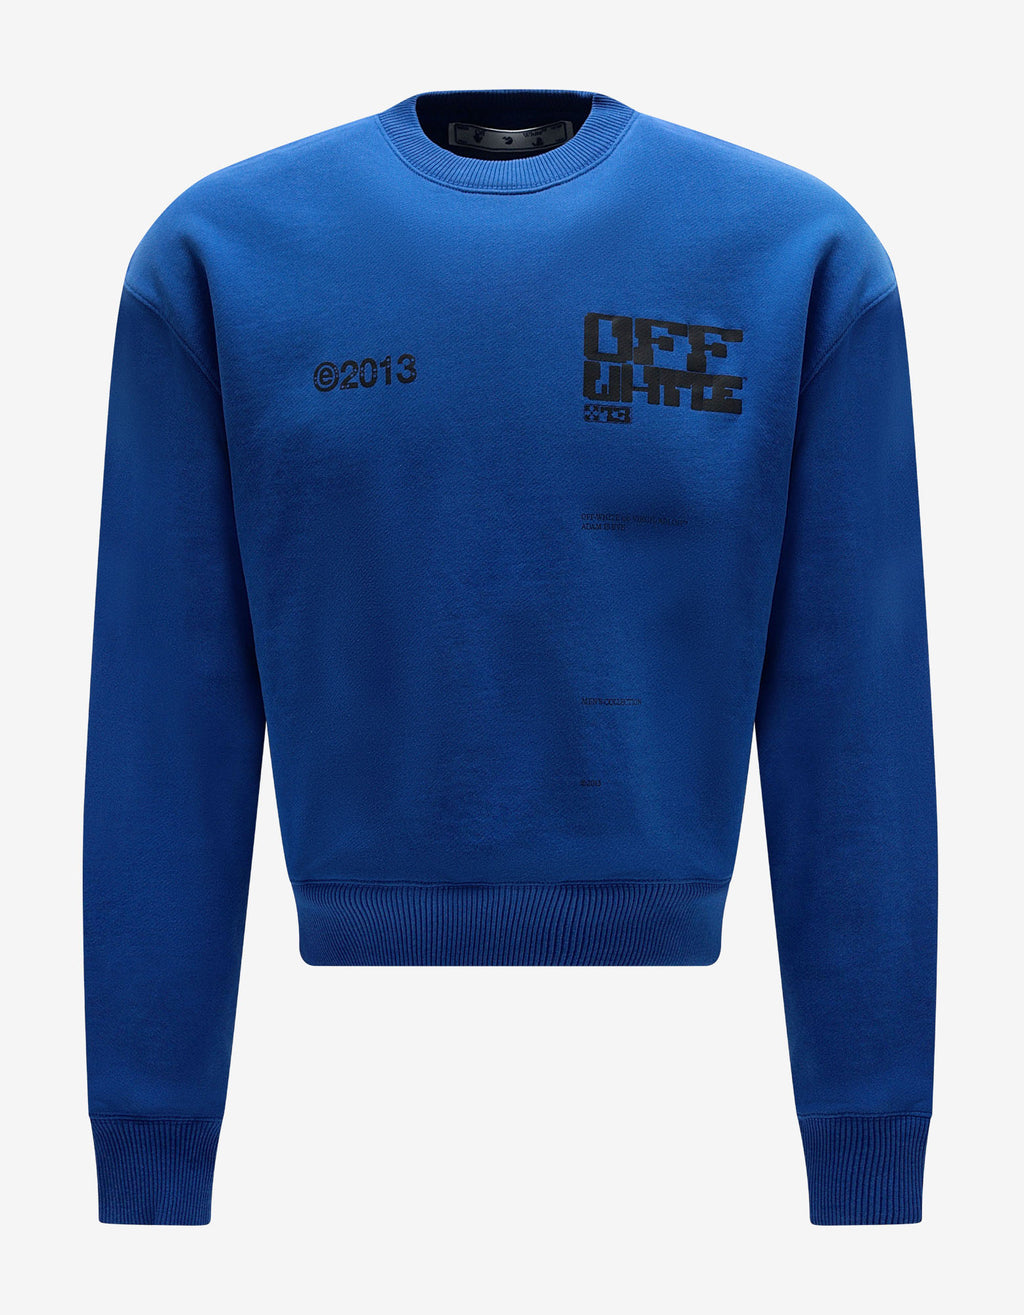 Blue Tech Marker Print Oversized Sweatshirt